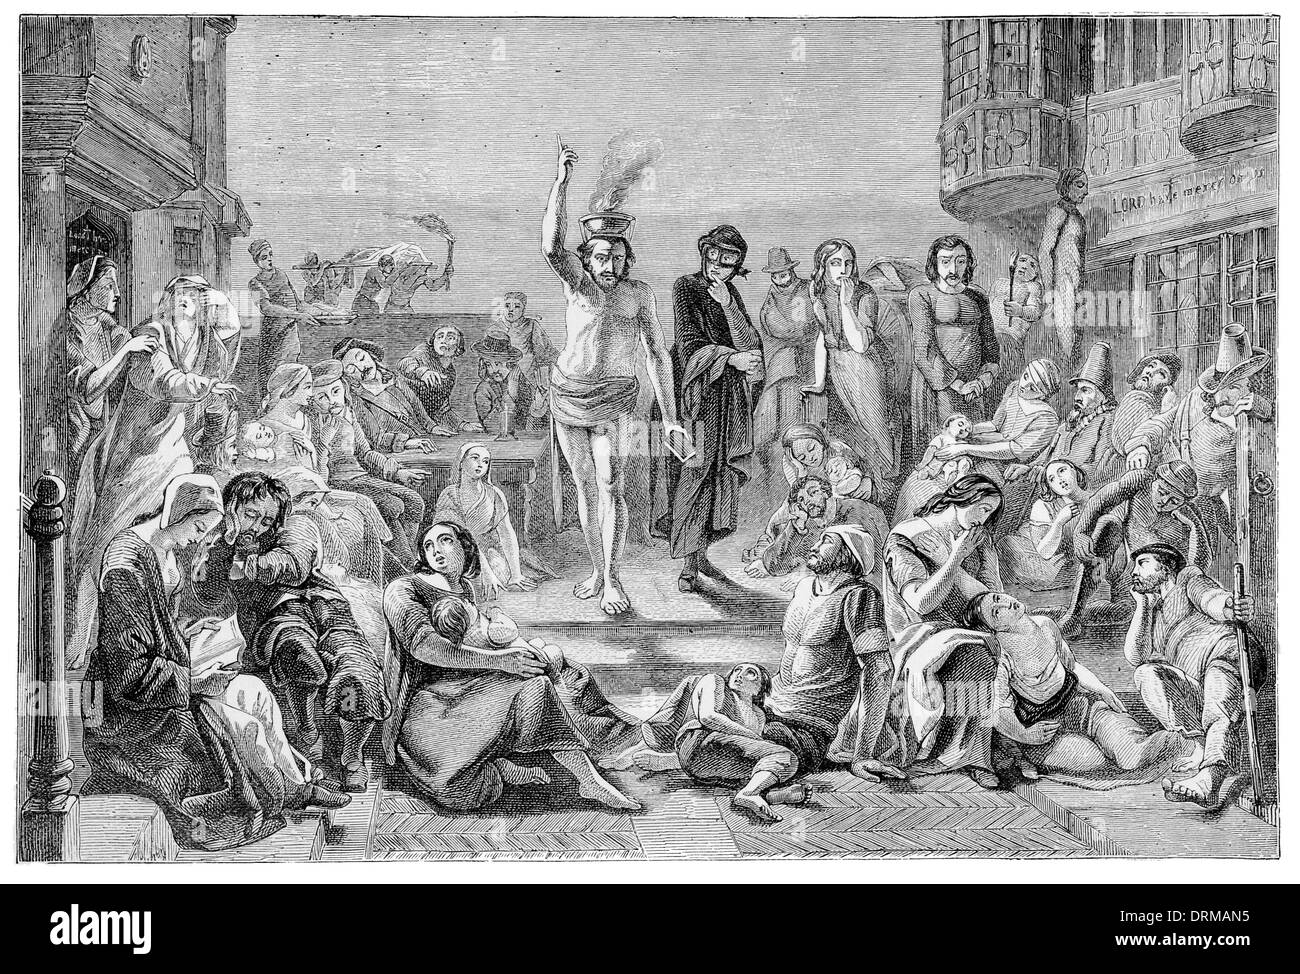 an analysis of the great plague of london How shakespeare's great escape from the plague changed theatre in 1606, deaths from the plague led to the closure of theatres mapping london's great plague of.